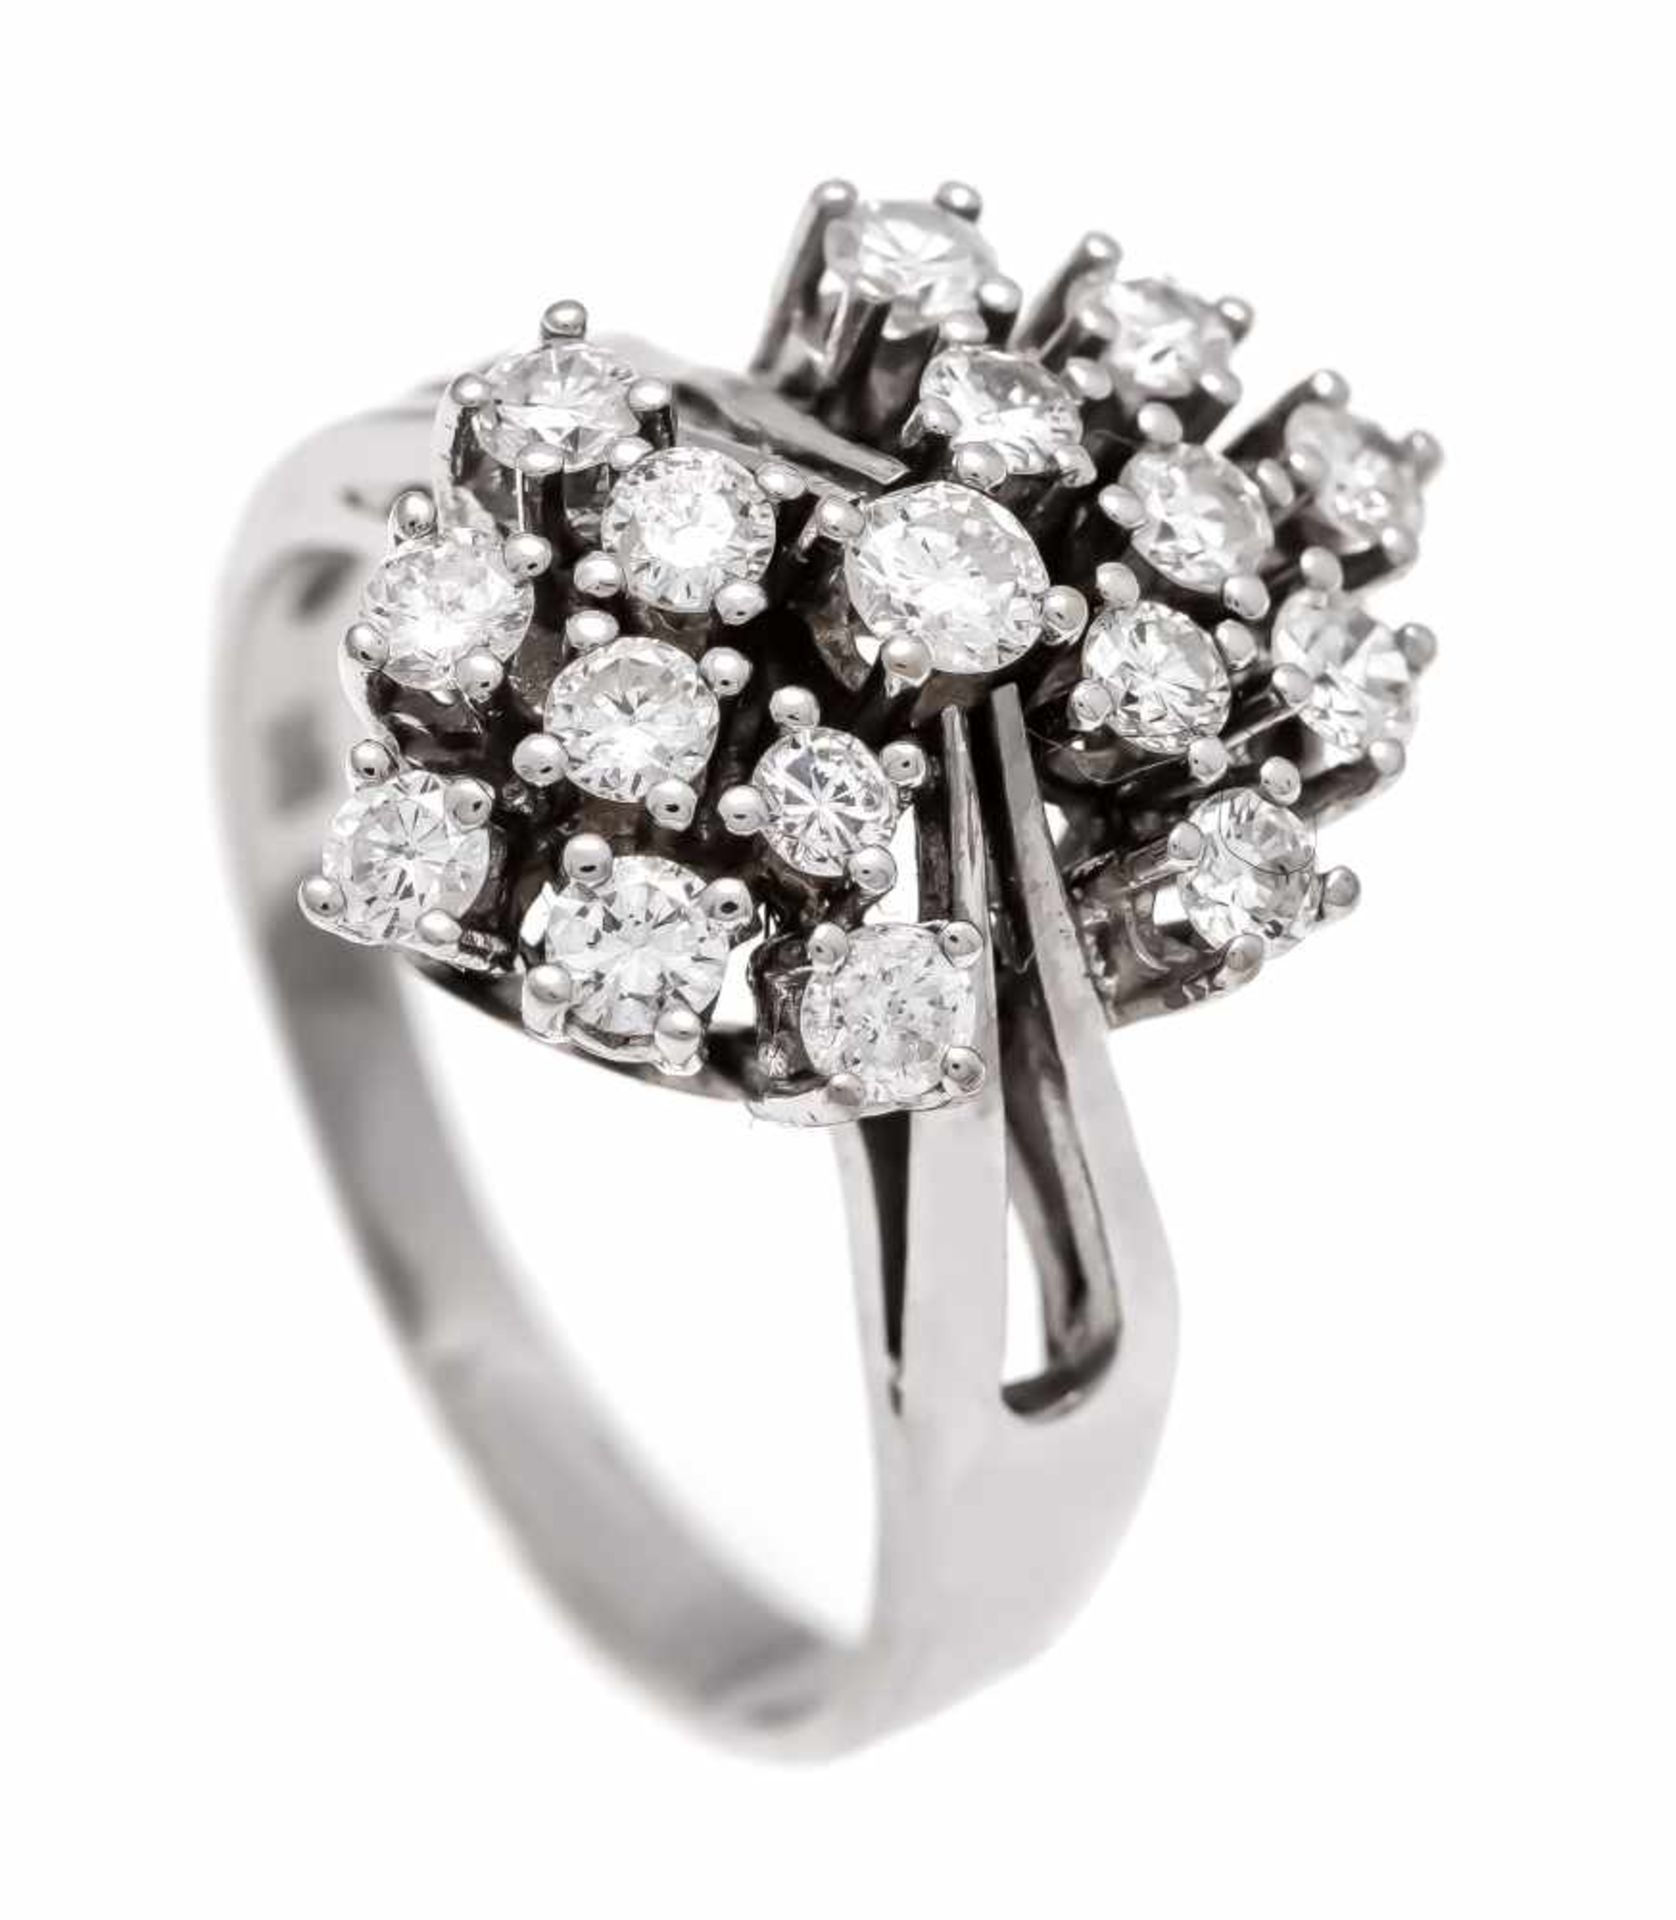 Brillant-Ring WG 585/000 mit 18 Brillanten, zus. 1,0 ct TW-W/VS-SI, RG 54, 4,8 gBrilliant ring WG